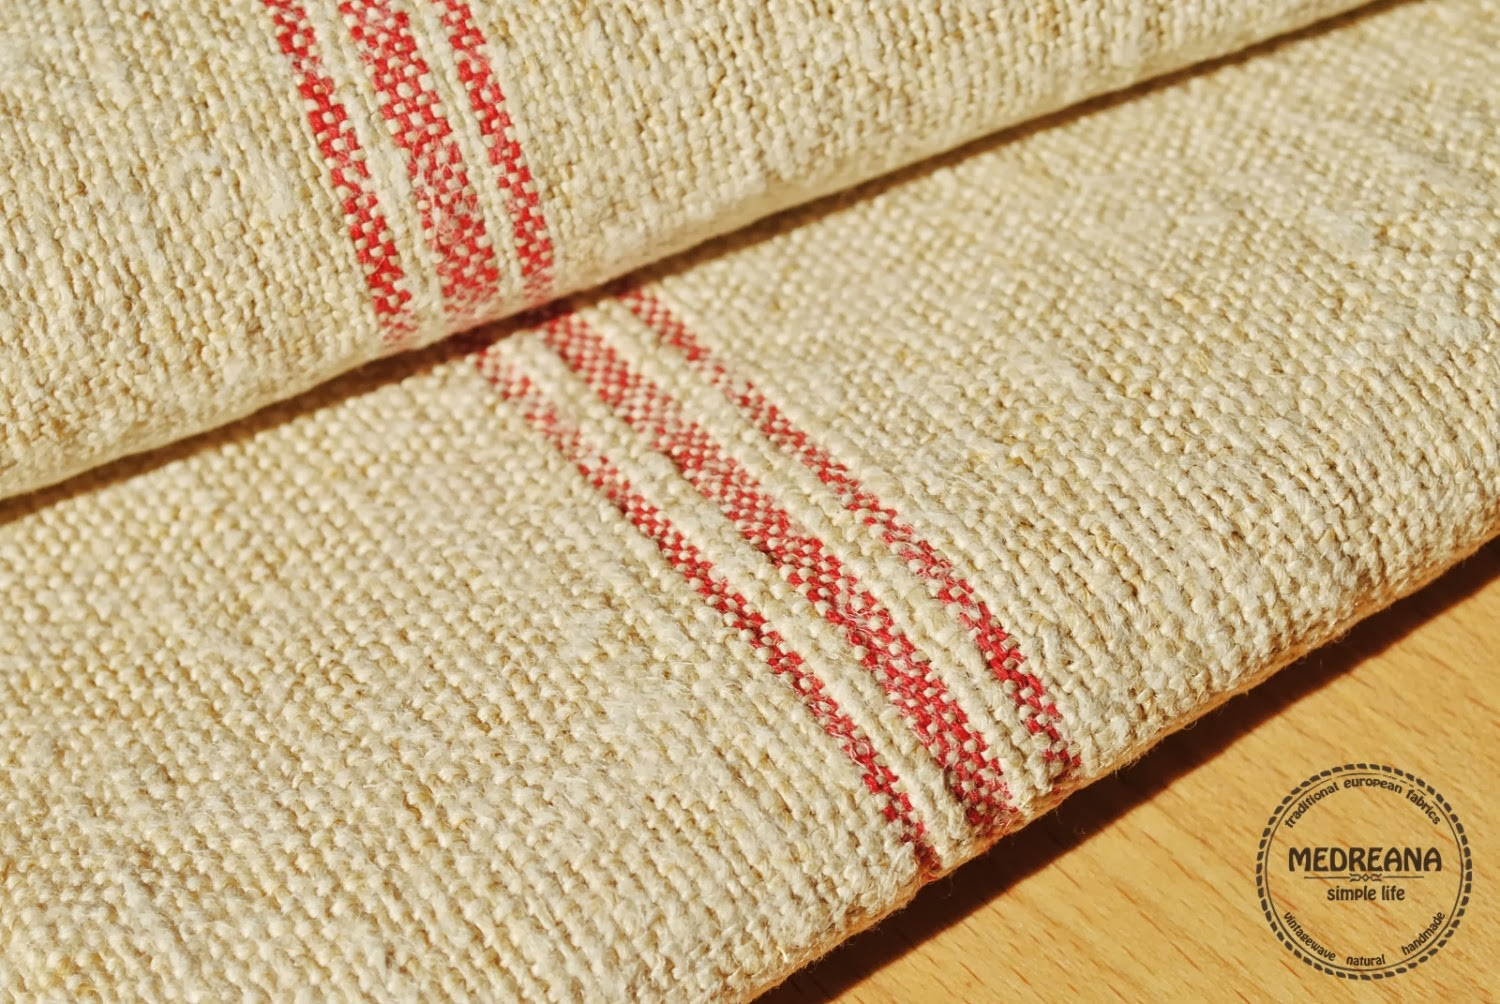 Vintage Hemp Towel / Table Runner   Antique European Kitchen Towel   Tea  Towels Torchon With Red And Black Stripes